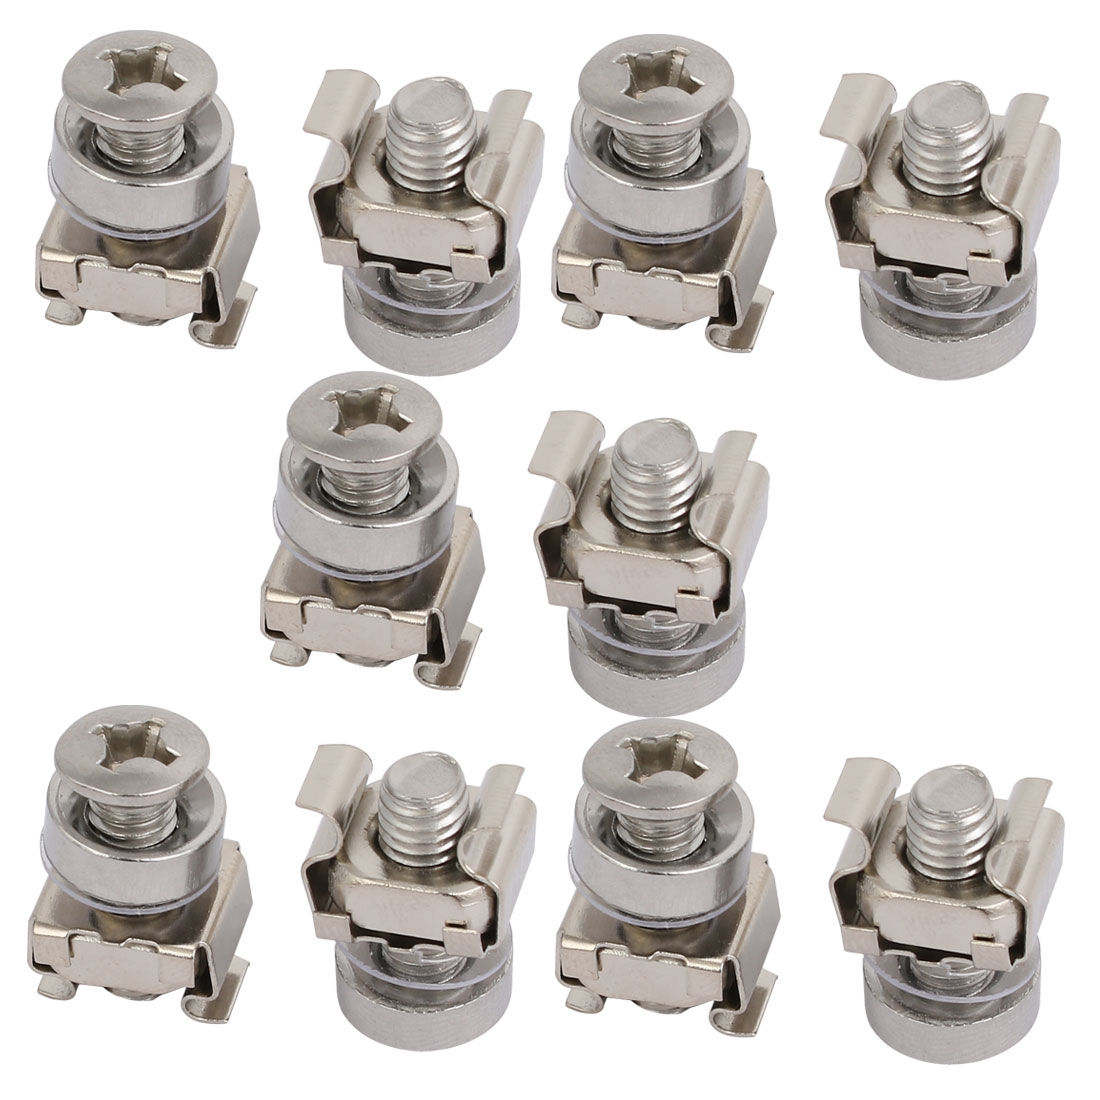 10pcs M6 Cage Nuts w Mounting Screws Washers for Server Rack Cabinet